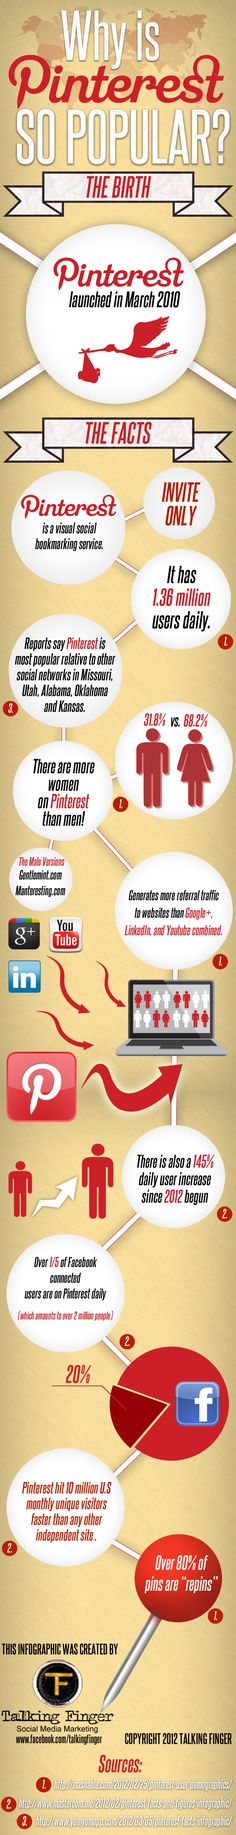 Why is Pinterest so popular? #infographic #pinterest #pinitbutton #pinit #socialmedia